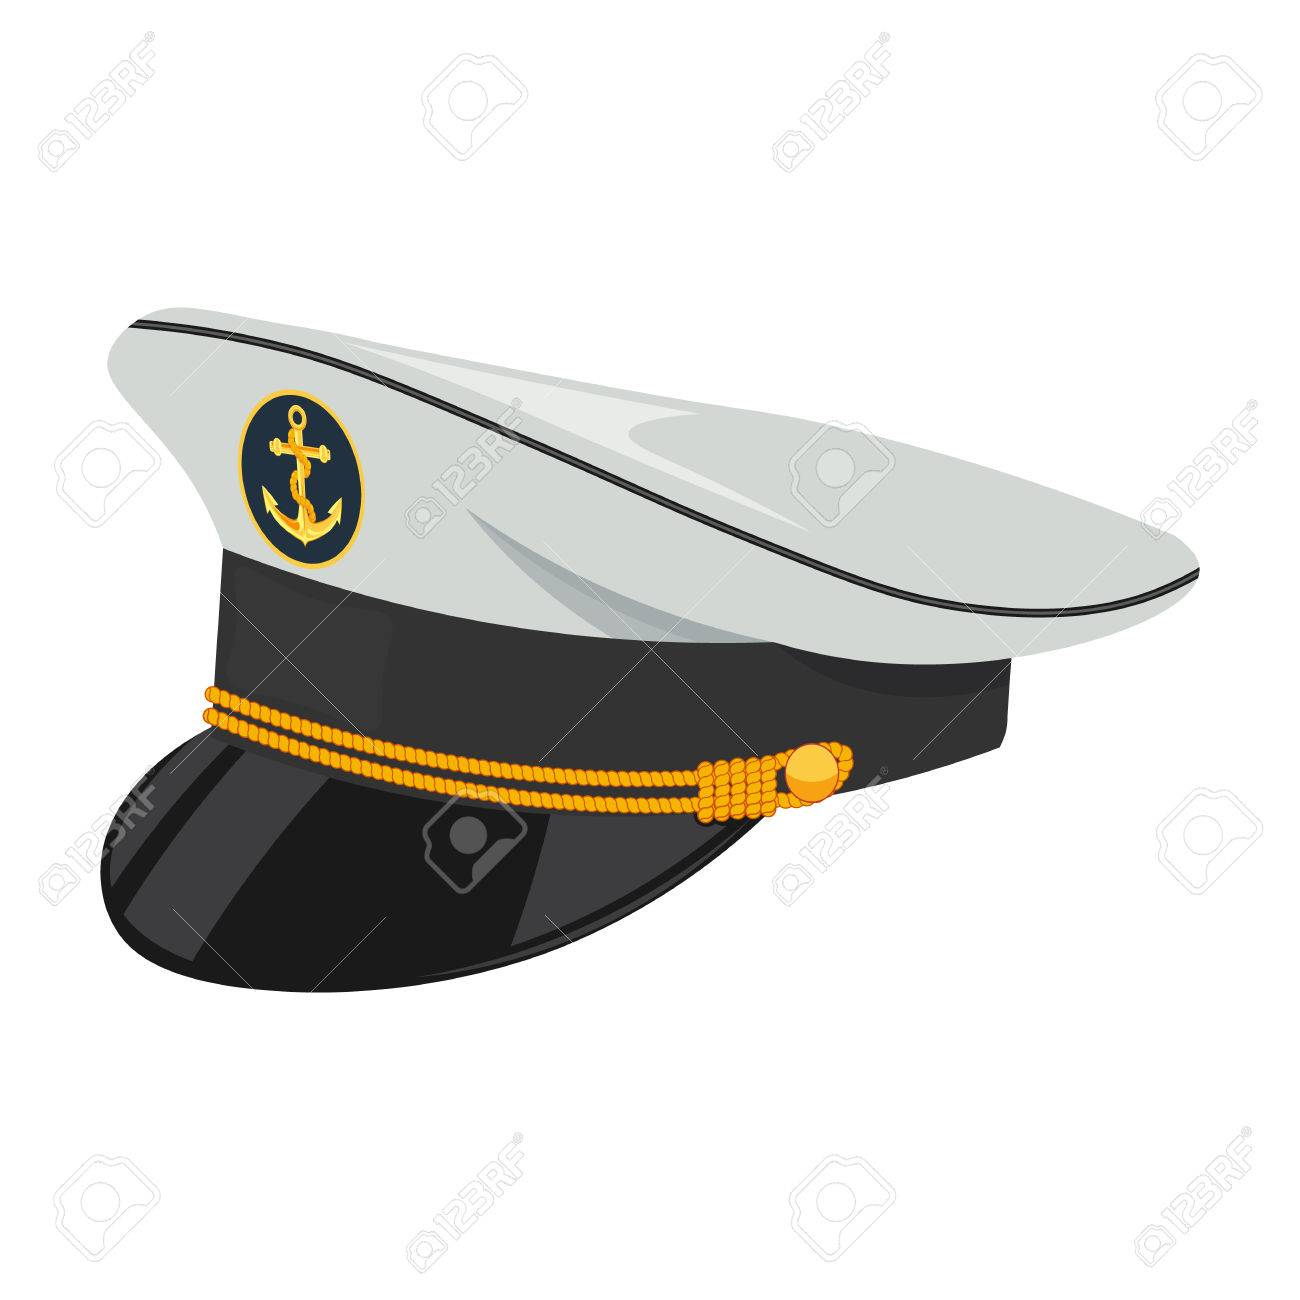 a0b68419478 Captain hat vector illustration isolated on a white background Stock Vector  - 58591592